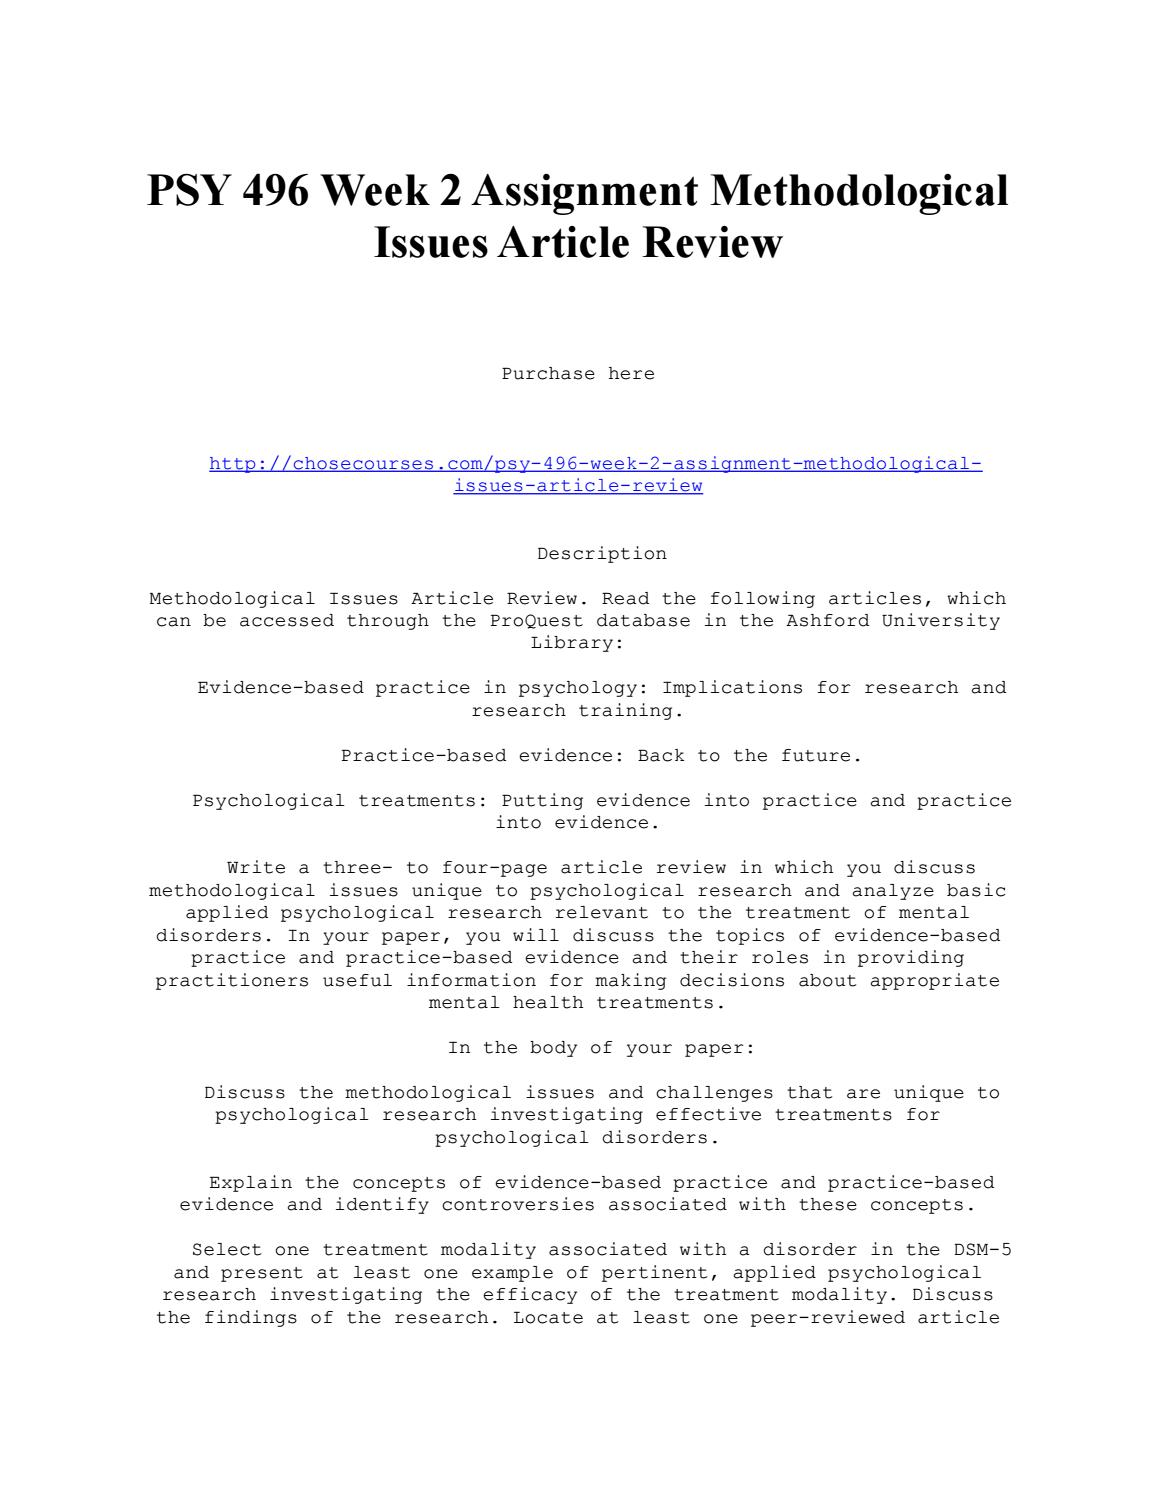 Psy 496 Week 2 Assignment Methodological Issues Article Review By